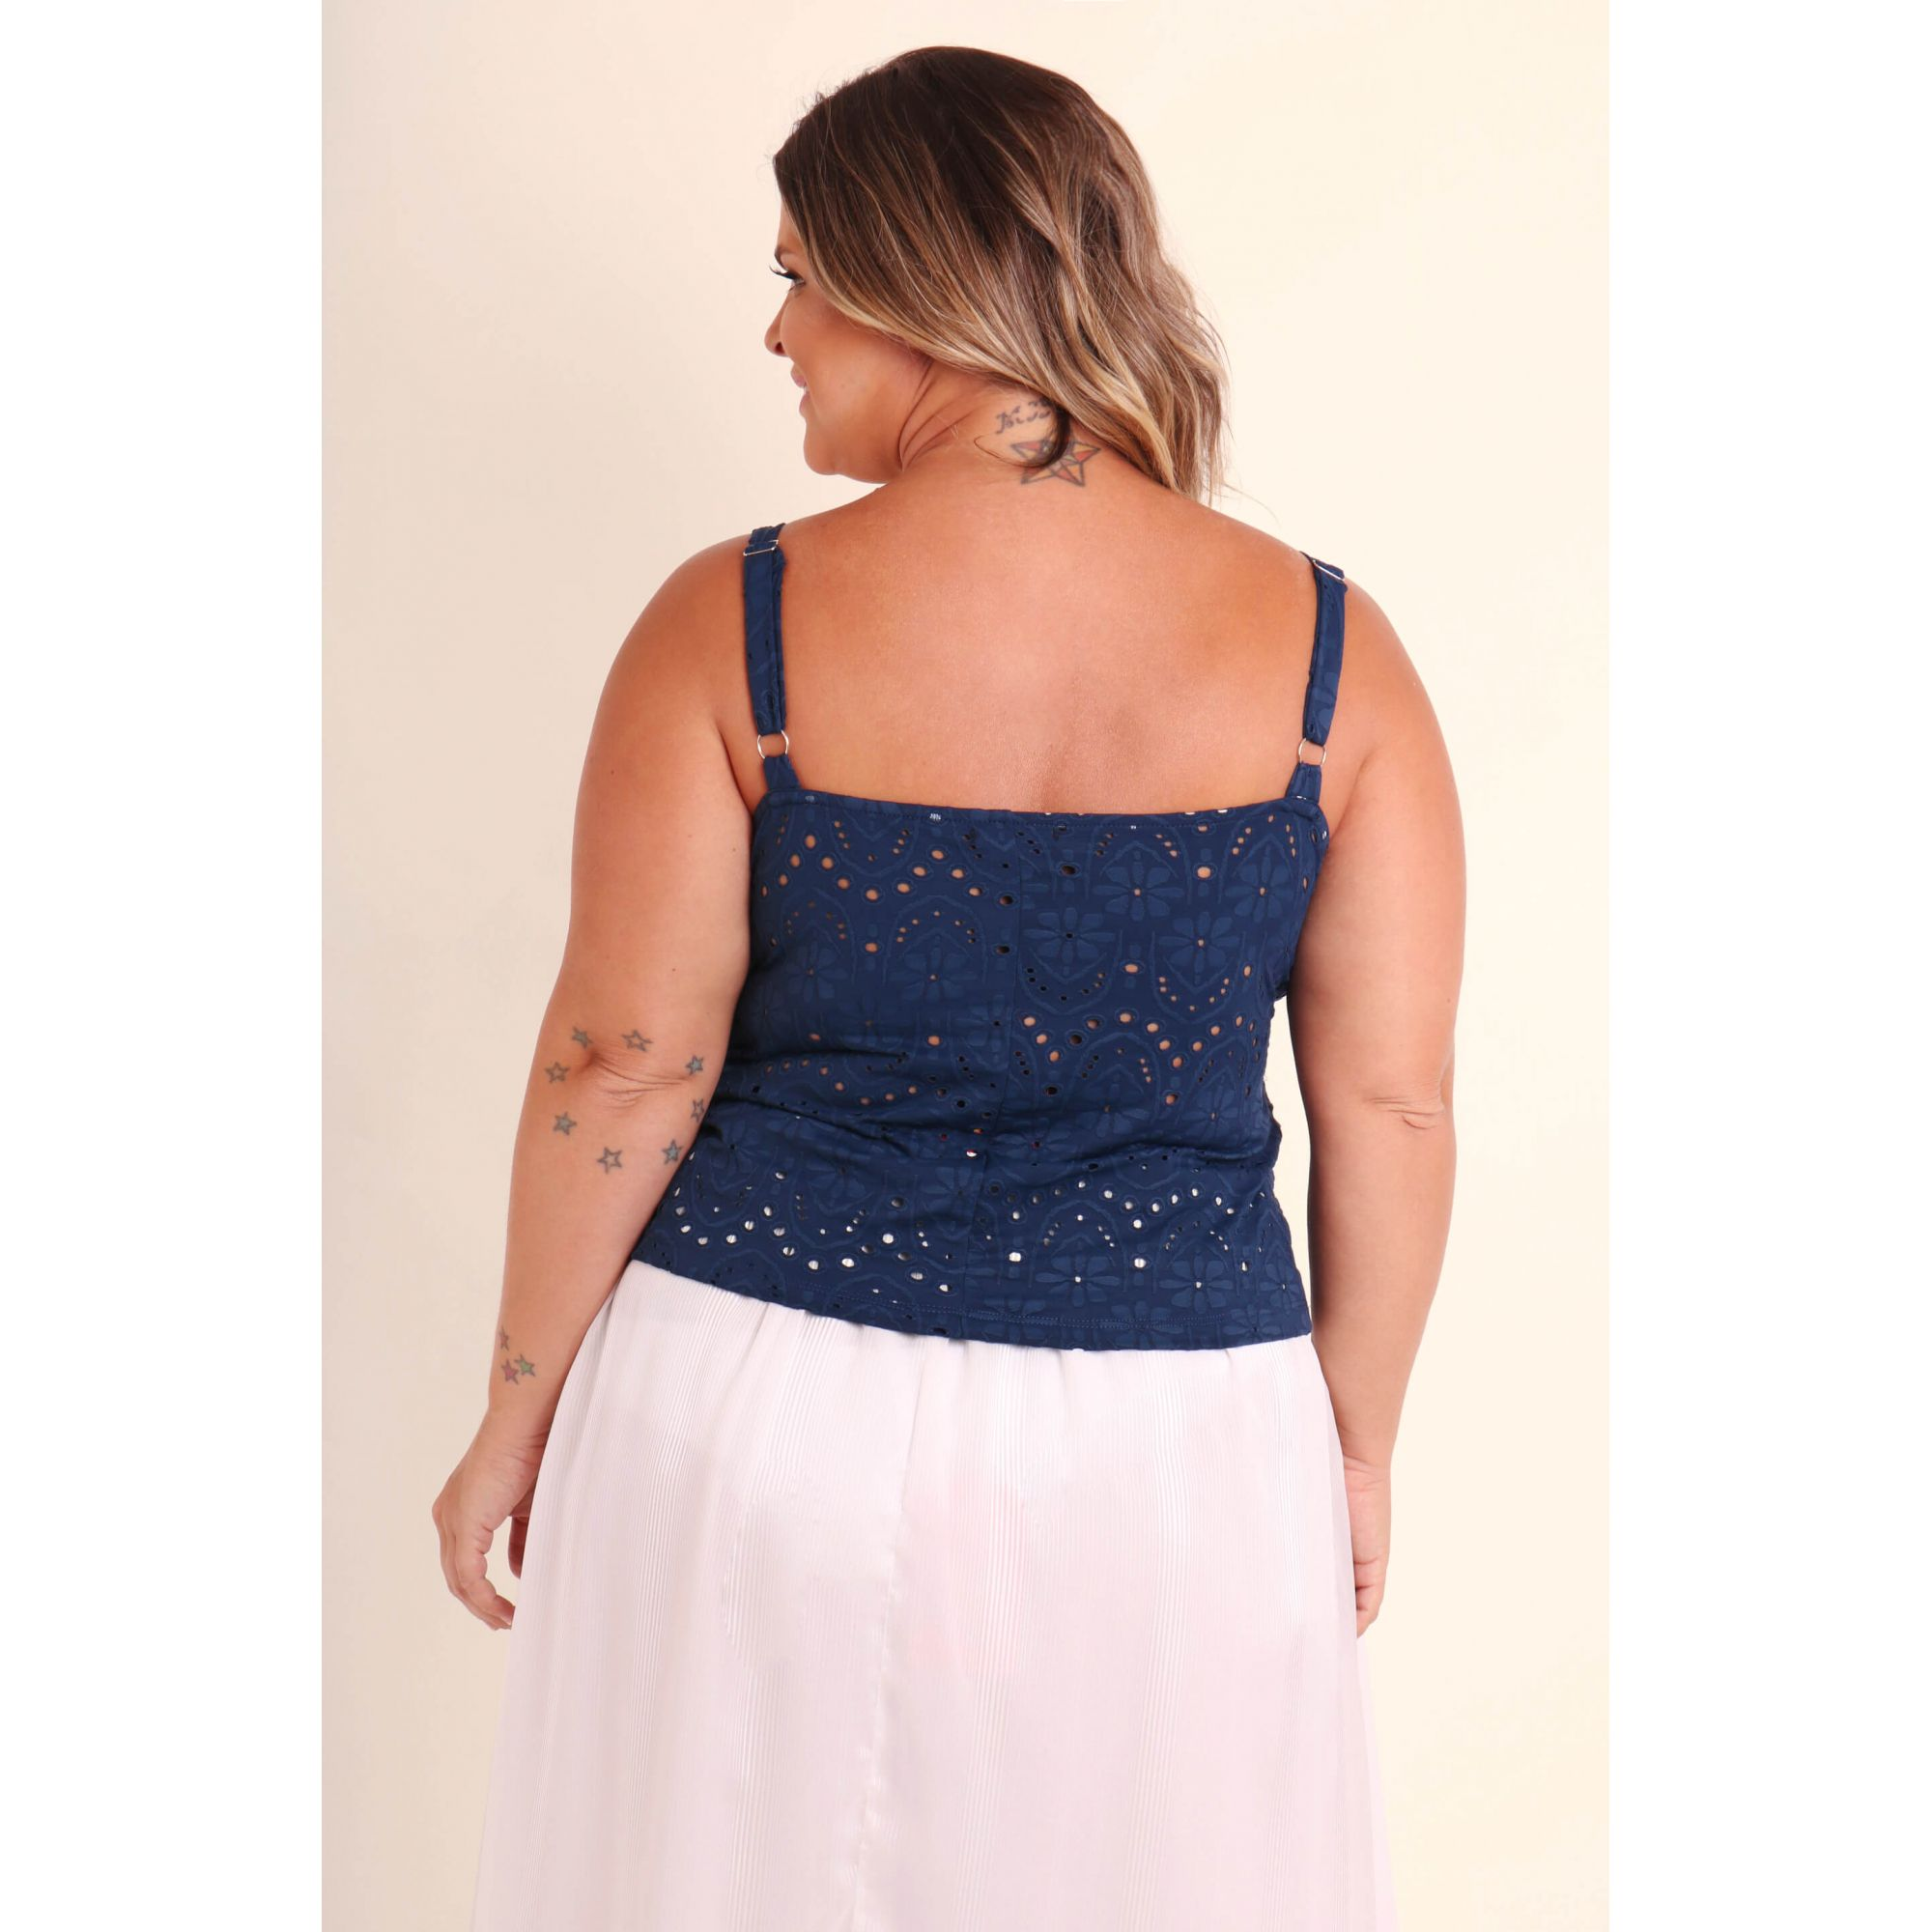 REGATA PLUS SIZE LISA AZUL